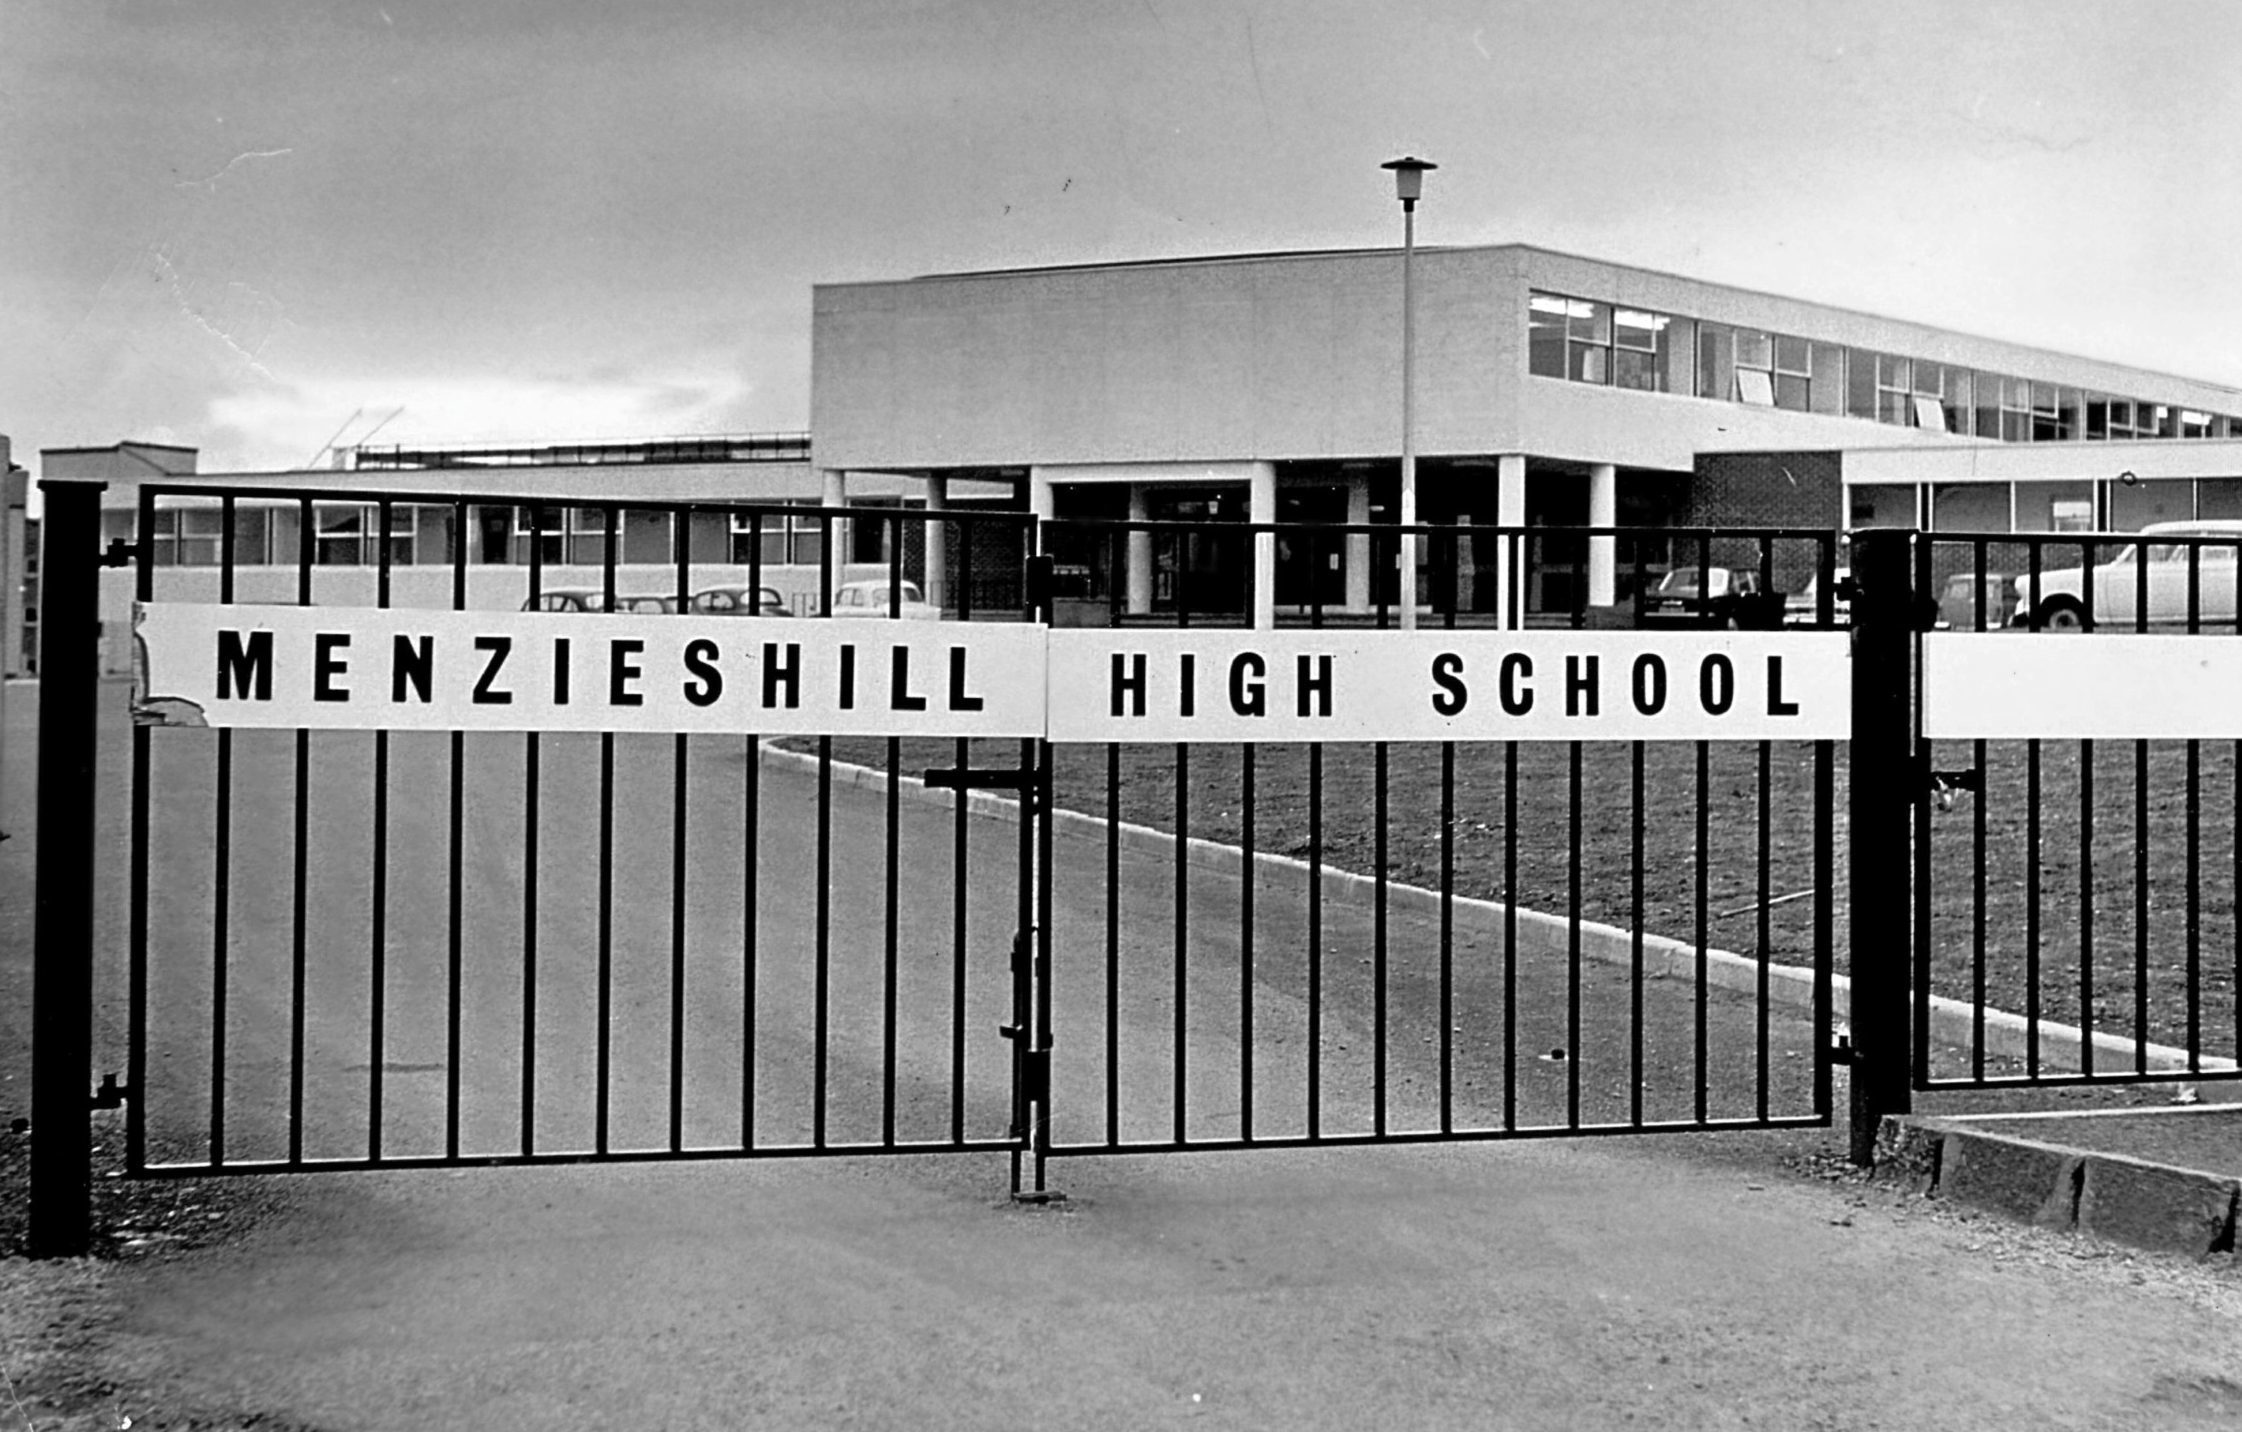 Menzieshill High School gates will close to pupils for the final time on Friday.